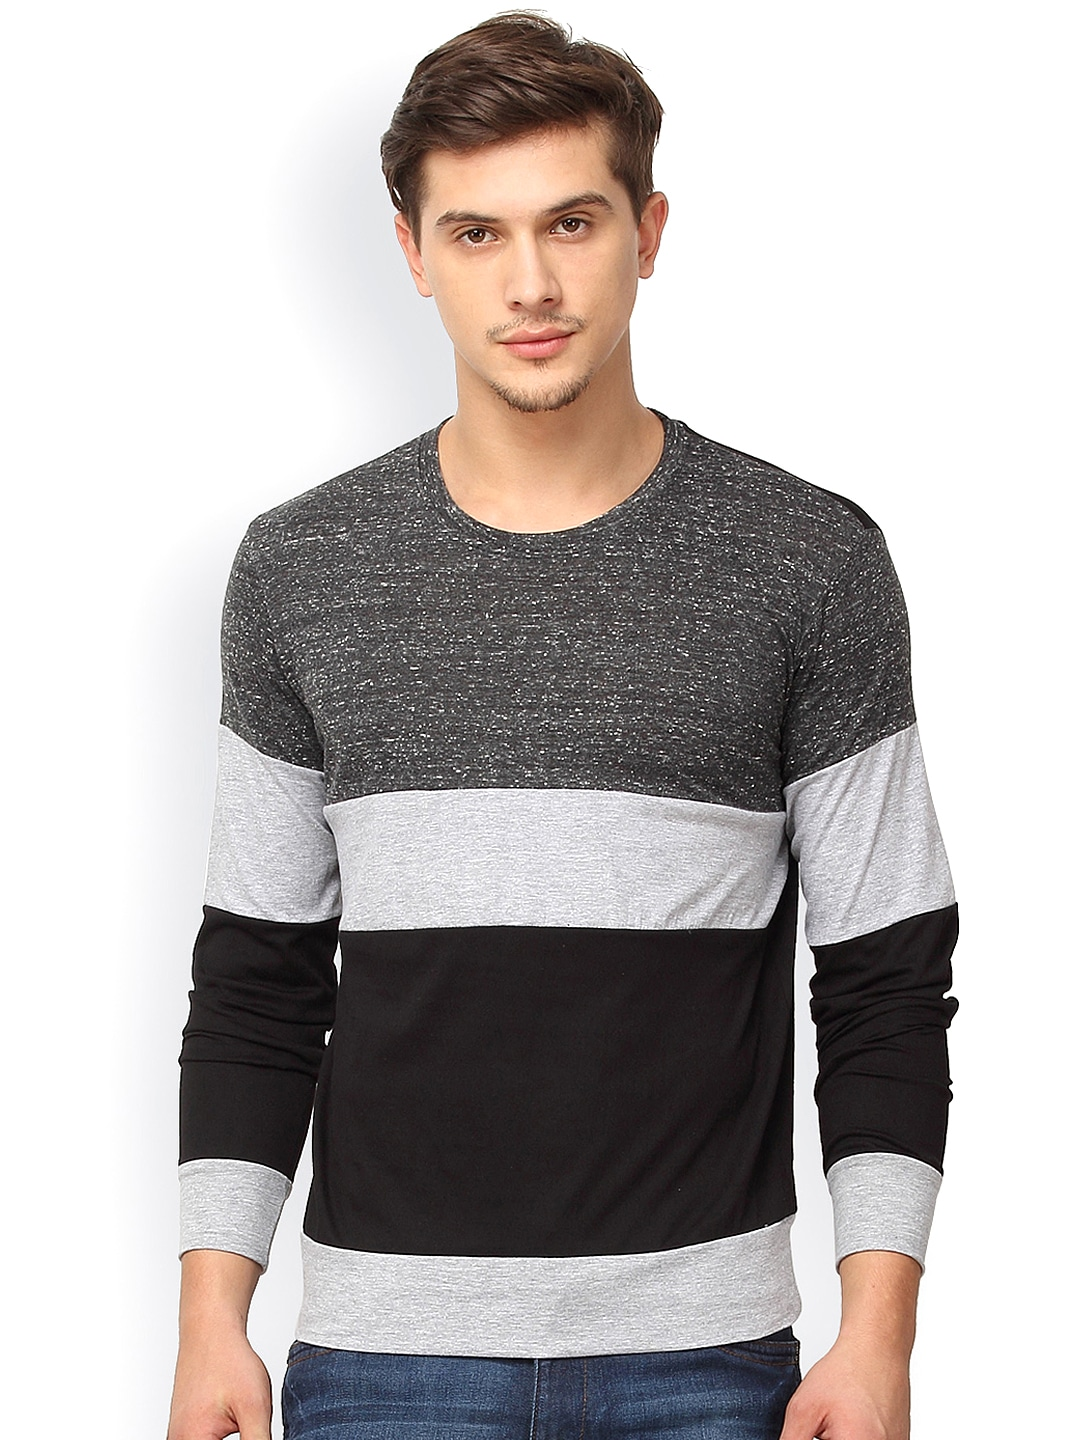 Buy T-Shirts for Men Online At Flipkart. Men's T-shirts Online for Different Occasions. Whether it's to the beach, to the lounge, to parties or for sports, you can easily buy T-shirts online that suit different occasions. Online shopping sites offer you t-shirts for men in a variety of neck styles, colors, fabrics and fit. Moreover.